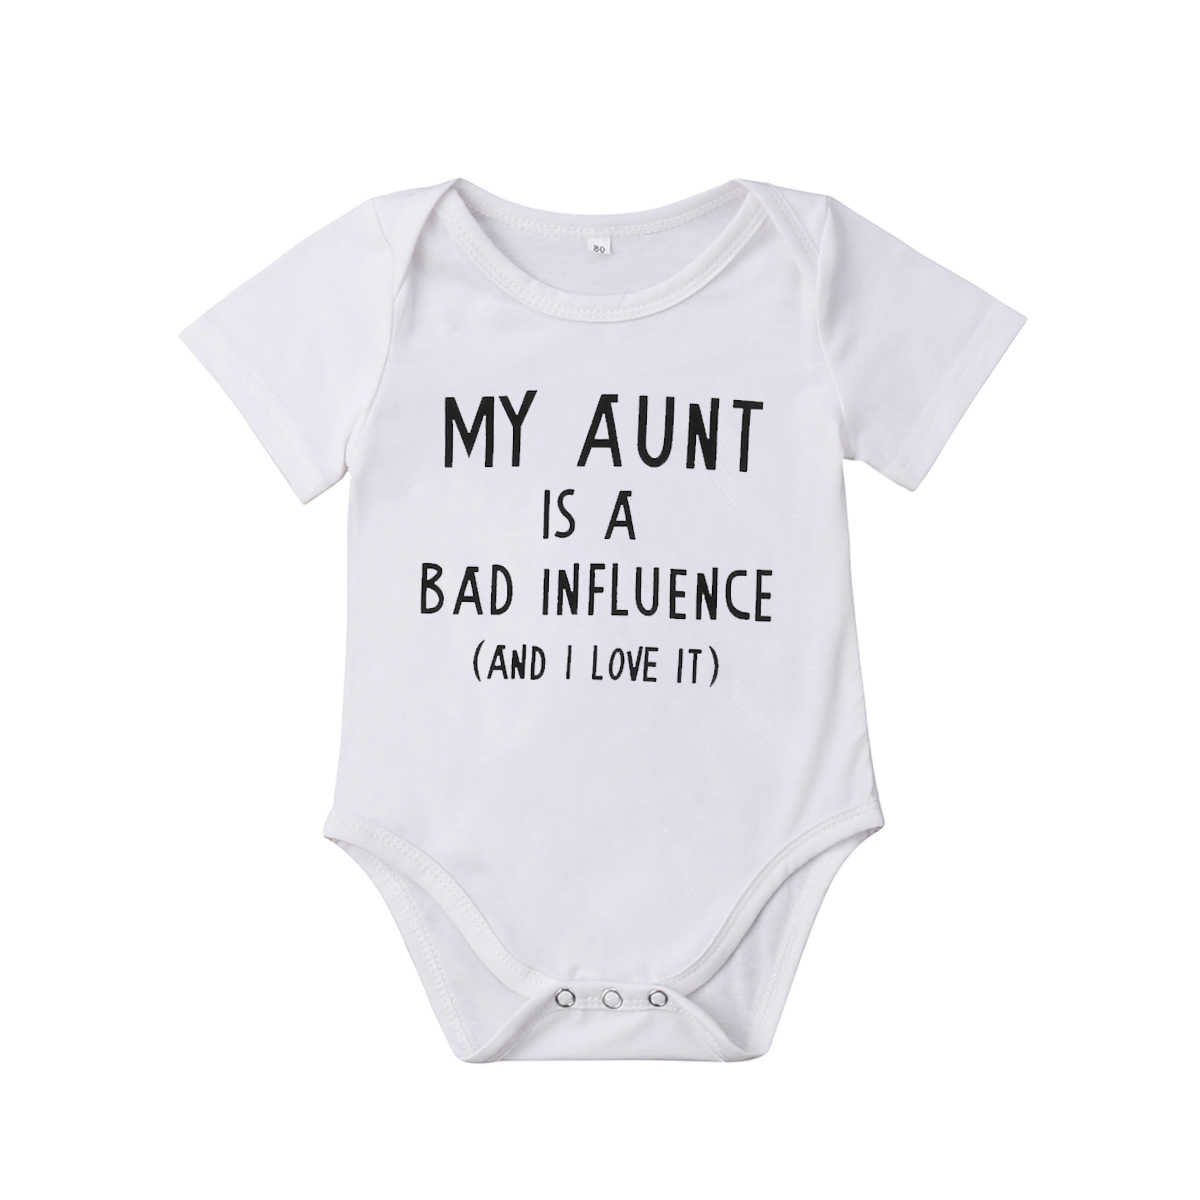 5f5bd21e406d Detail Feedback Questions about My Aunt Infant Newborn Baby Boy Girl Short  Sleeve Letter Print Cotton Romper Jumpsuit Outfits Baby Clothes on  Aliexpress.com ...